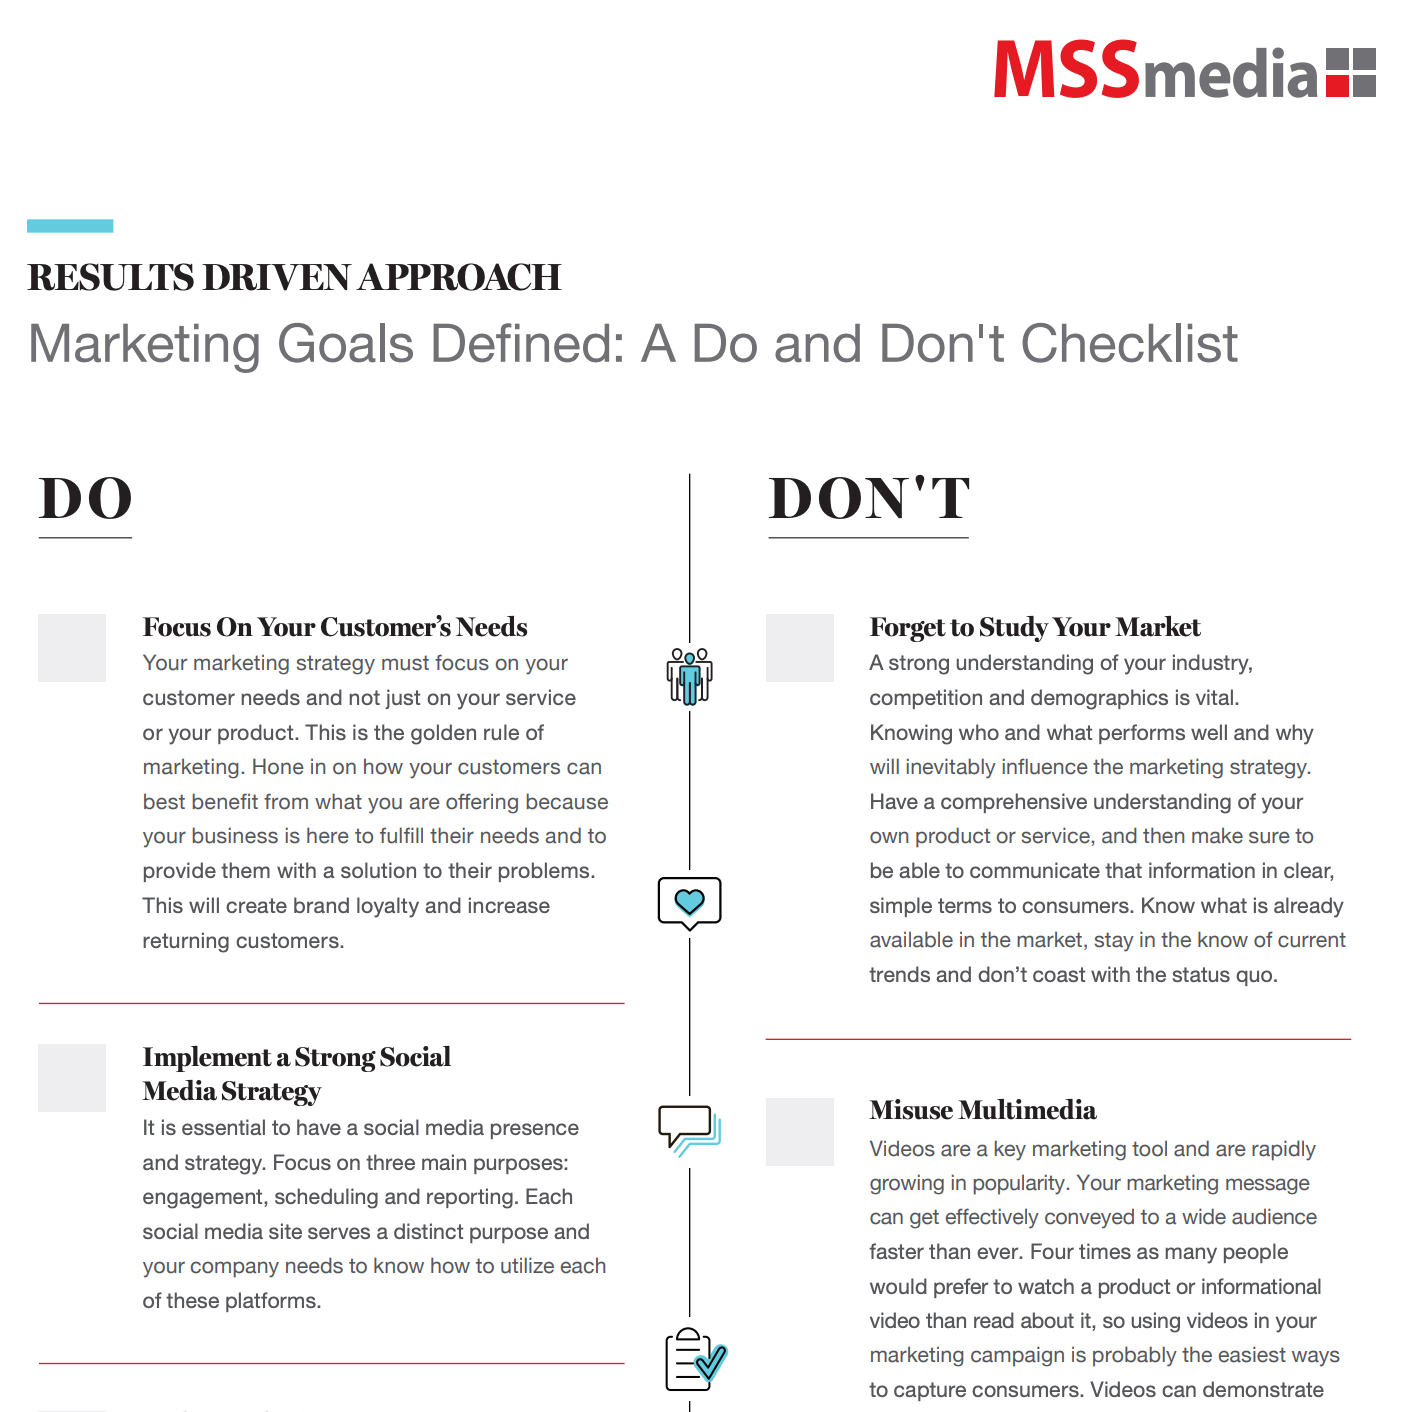 Worksheet Thumbnail - Do and Dont Checklist